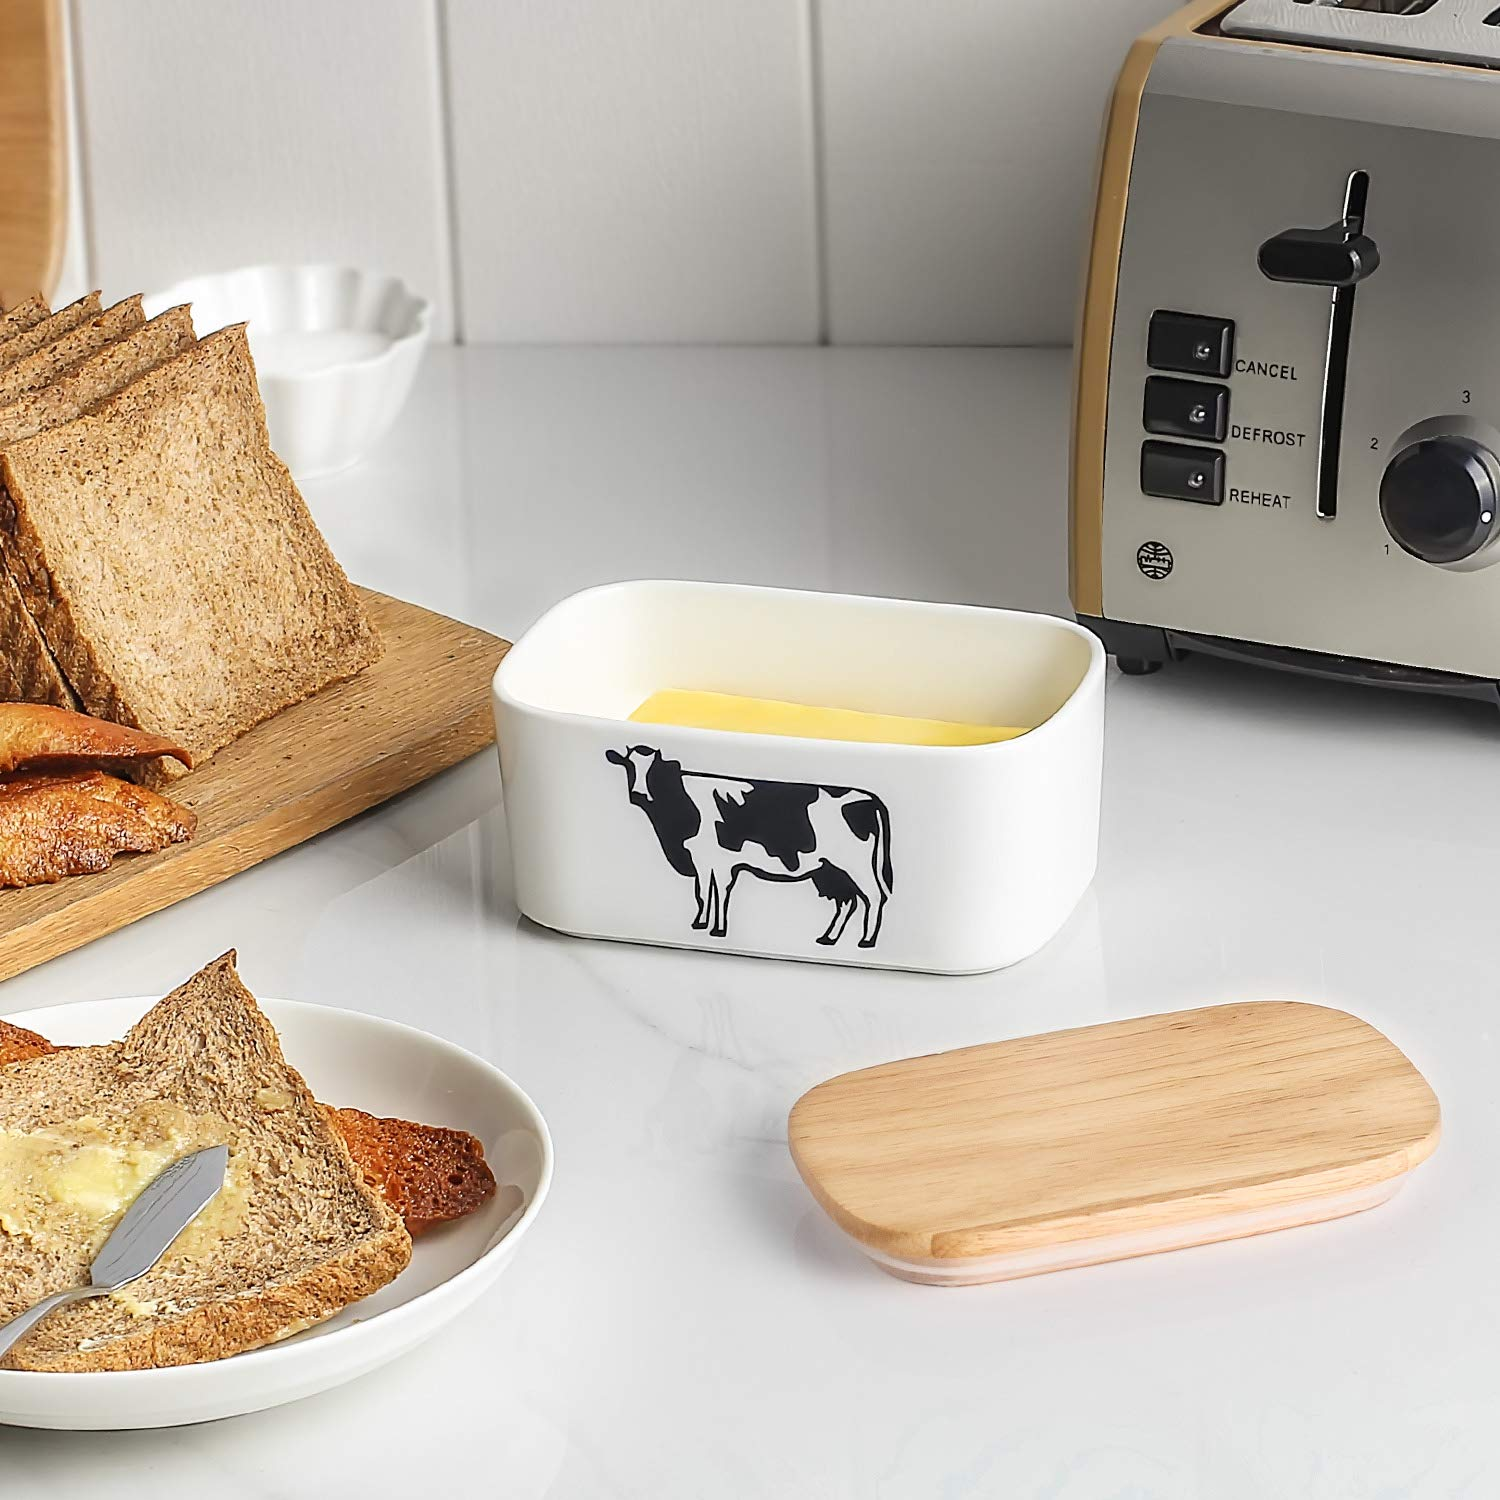 DOWAN Porcelain Butter Dish - Airtight Butter Keeper With Wooden Lid To Keep Butter Fresh - Large Butter Container Holds Up to 2 Sticks of Butter by DOWAN (Image #3)